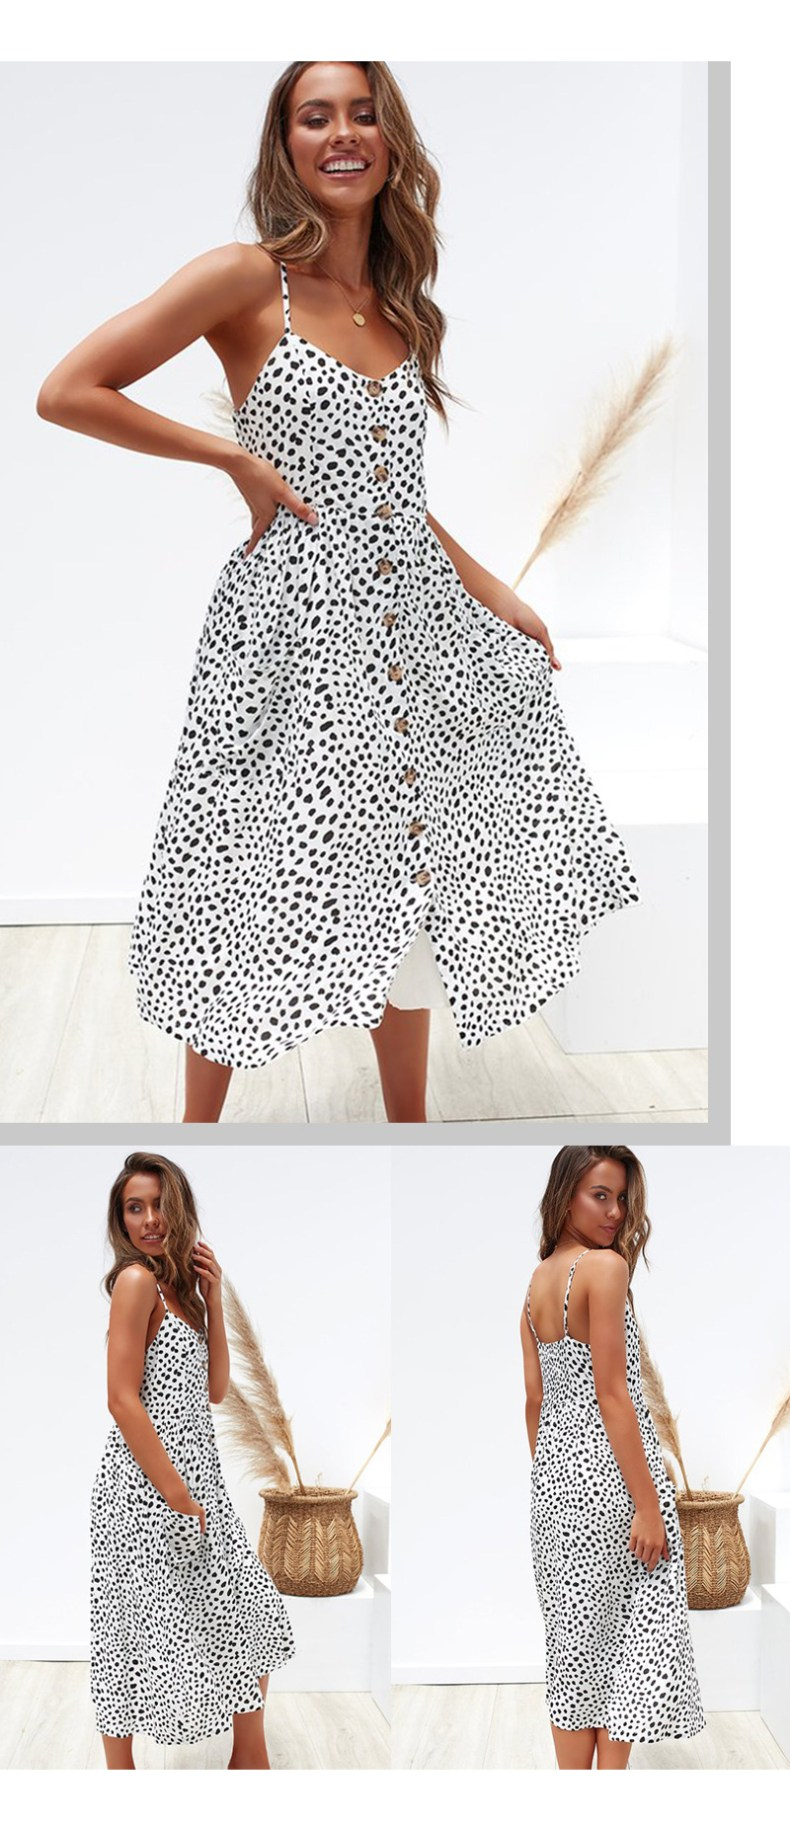 10677385458 1685006654 Women Summer Dress 2019 Boho Sexy Spaghetti Straps Floral Beach Dress With Pocket Midi Button Backless Sundress Female Vestidos